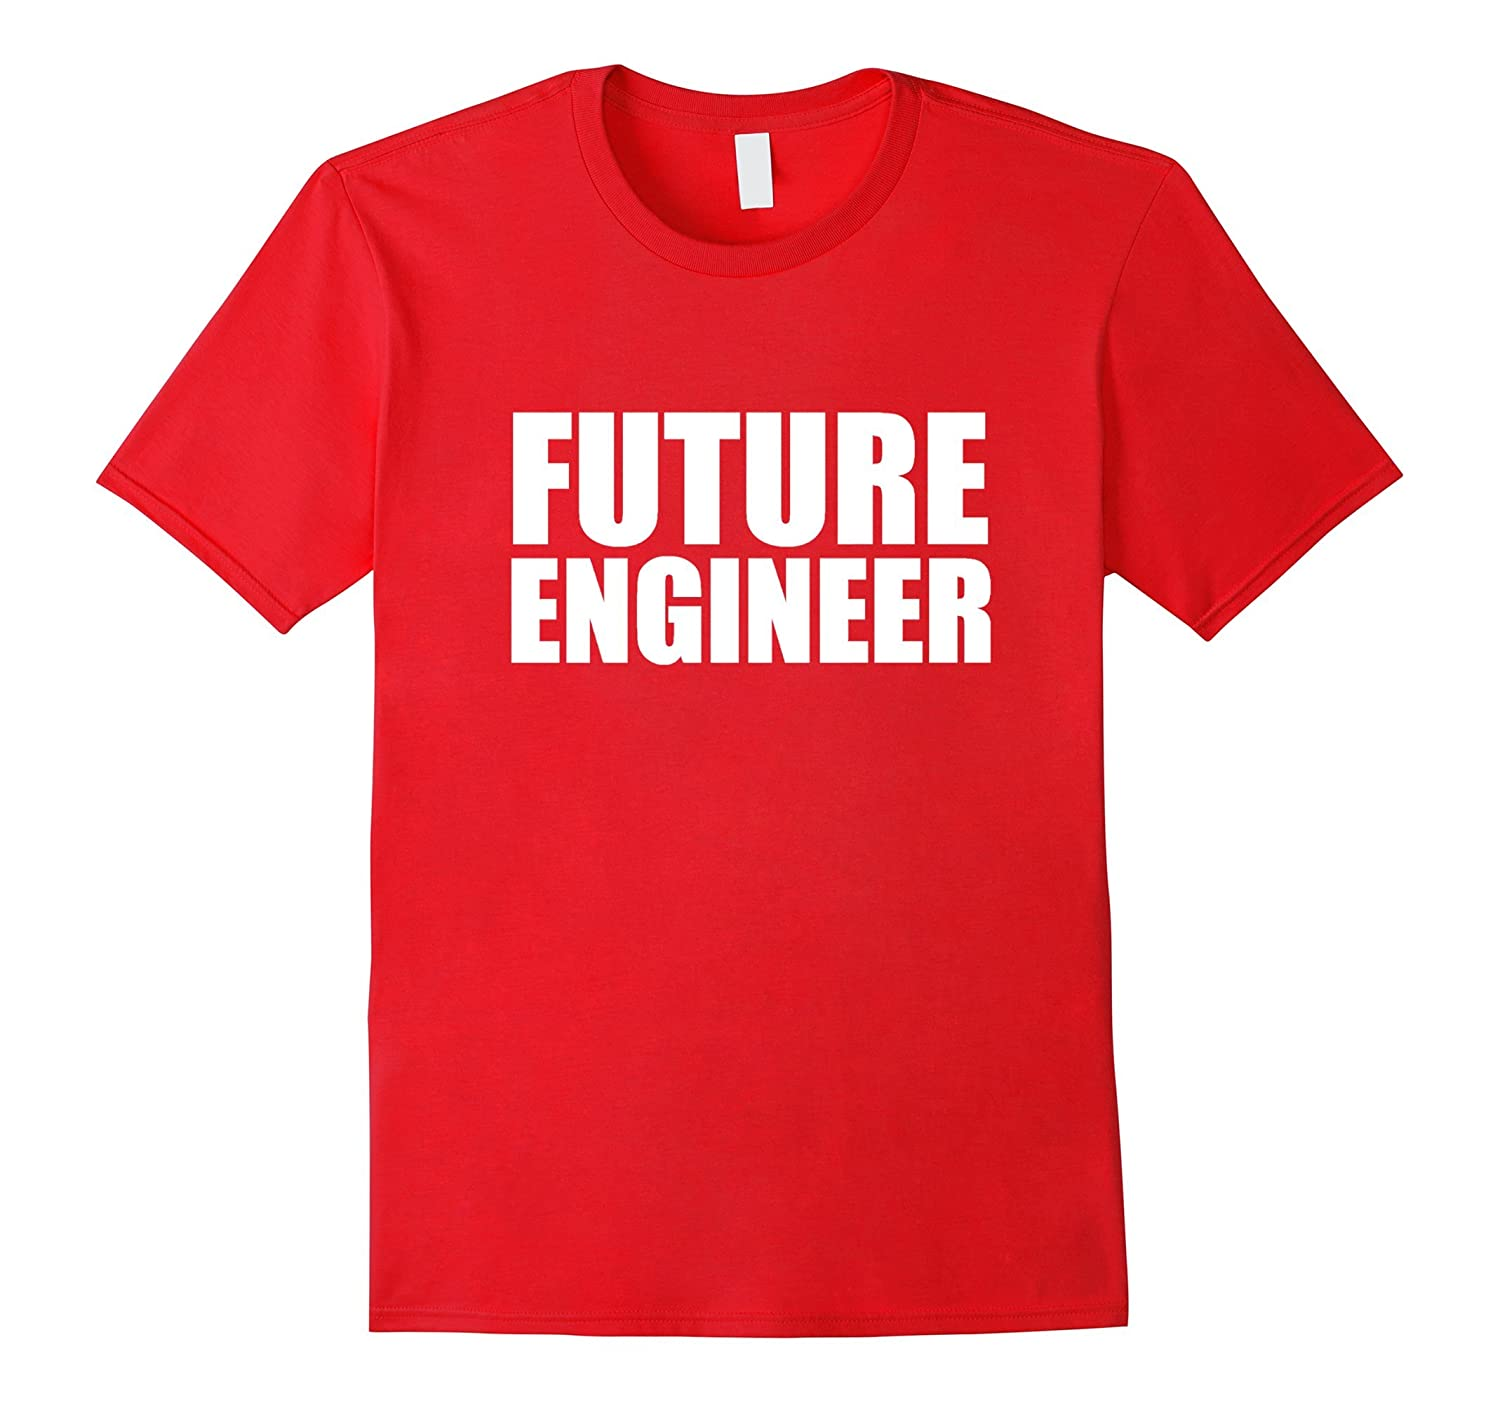 Future Engineer T-shirt College Graduate Graduation Gift-Vaci